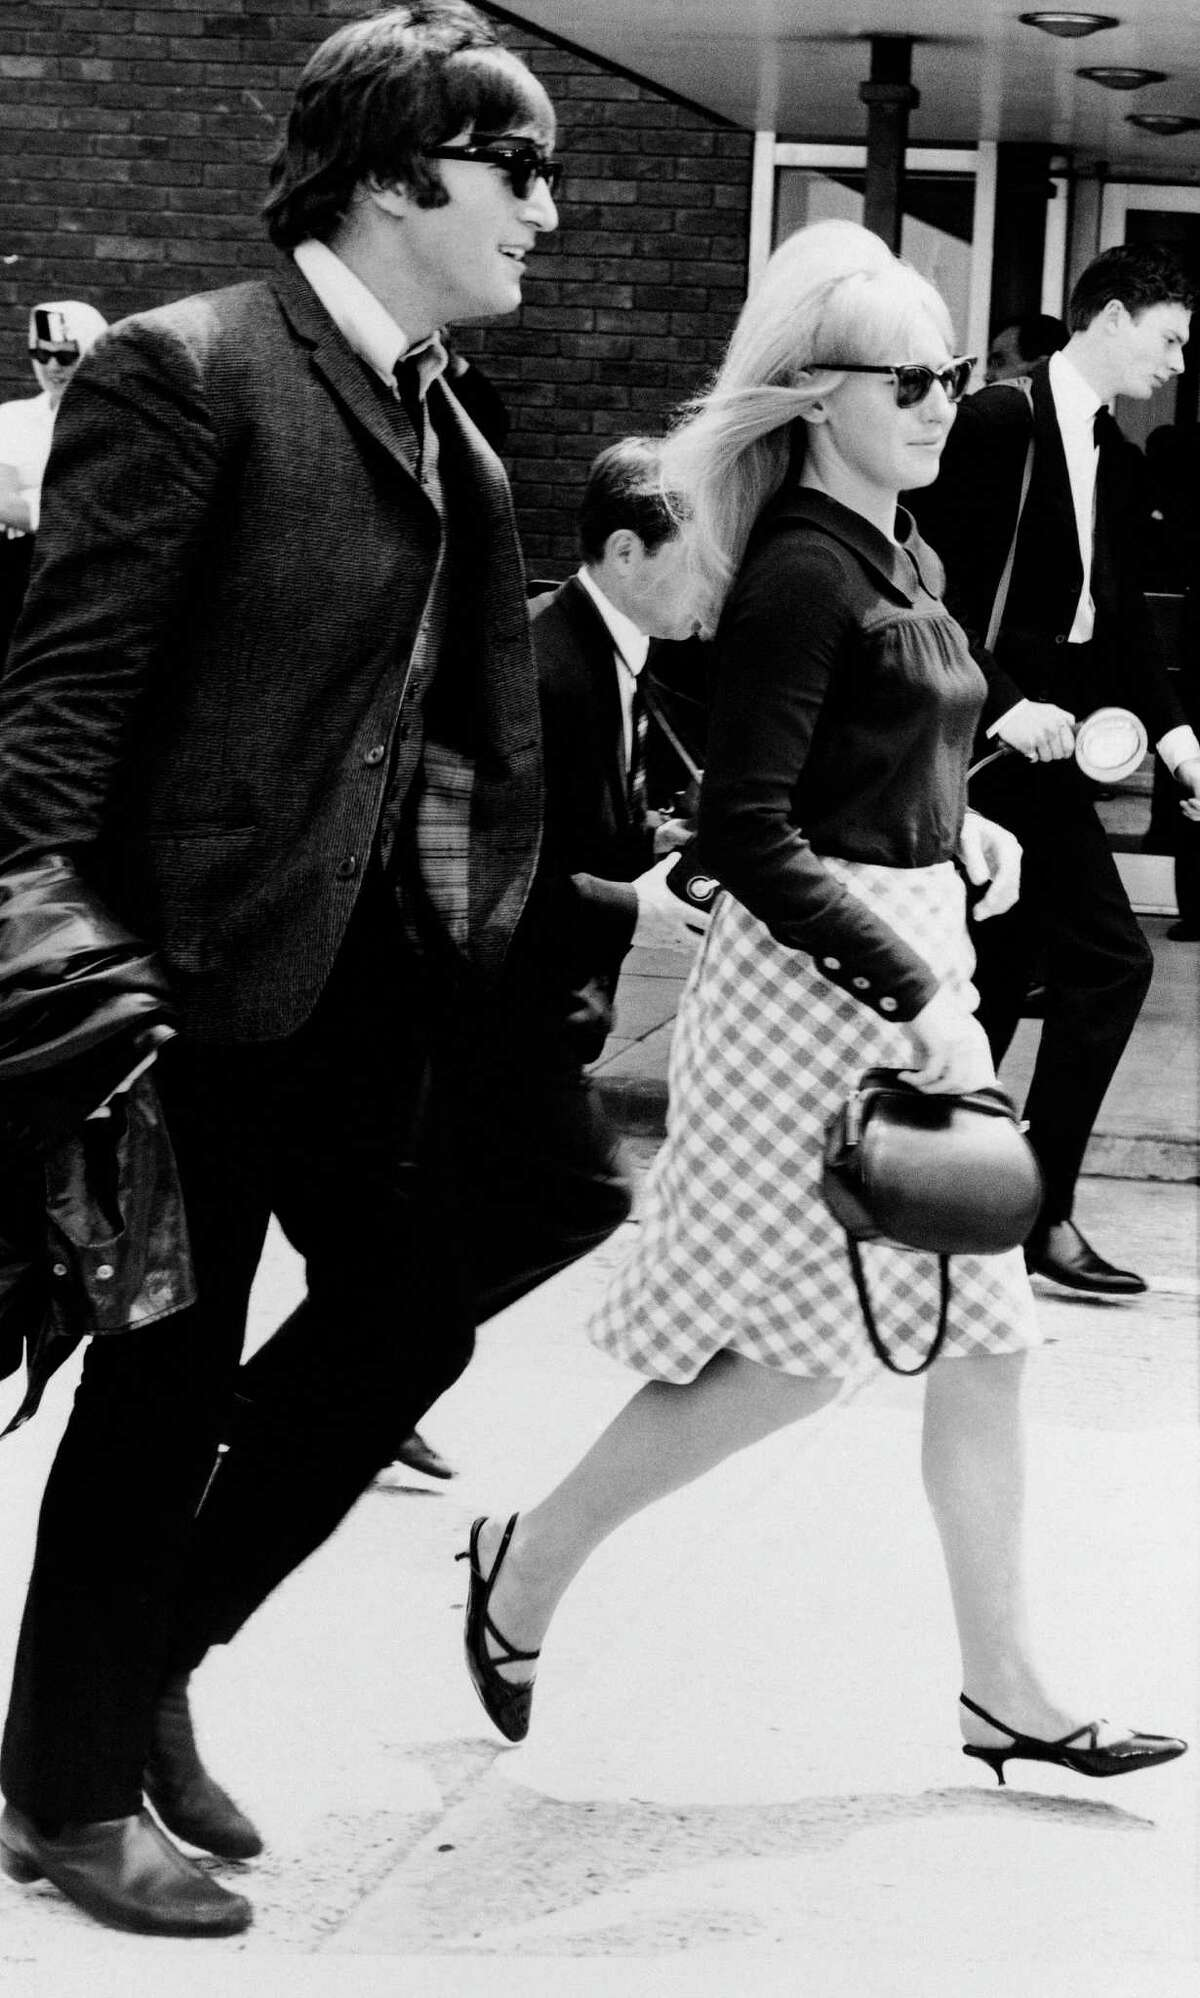 John Lennon and Cynthia return to England in July 1964 after the Beatles toured Australia and New Zealand